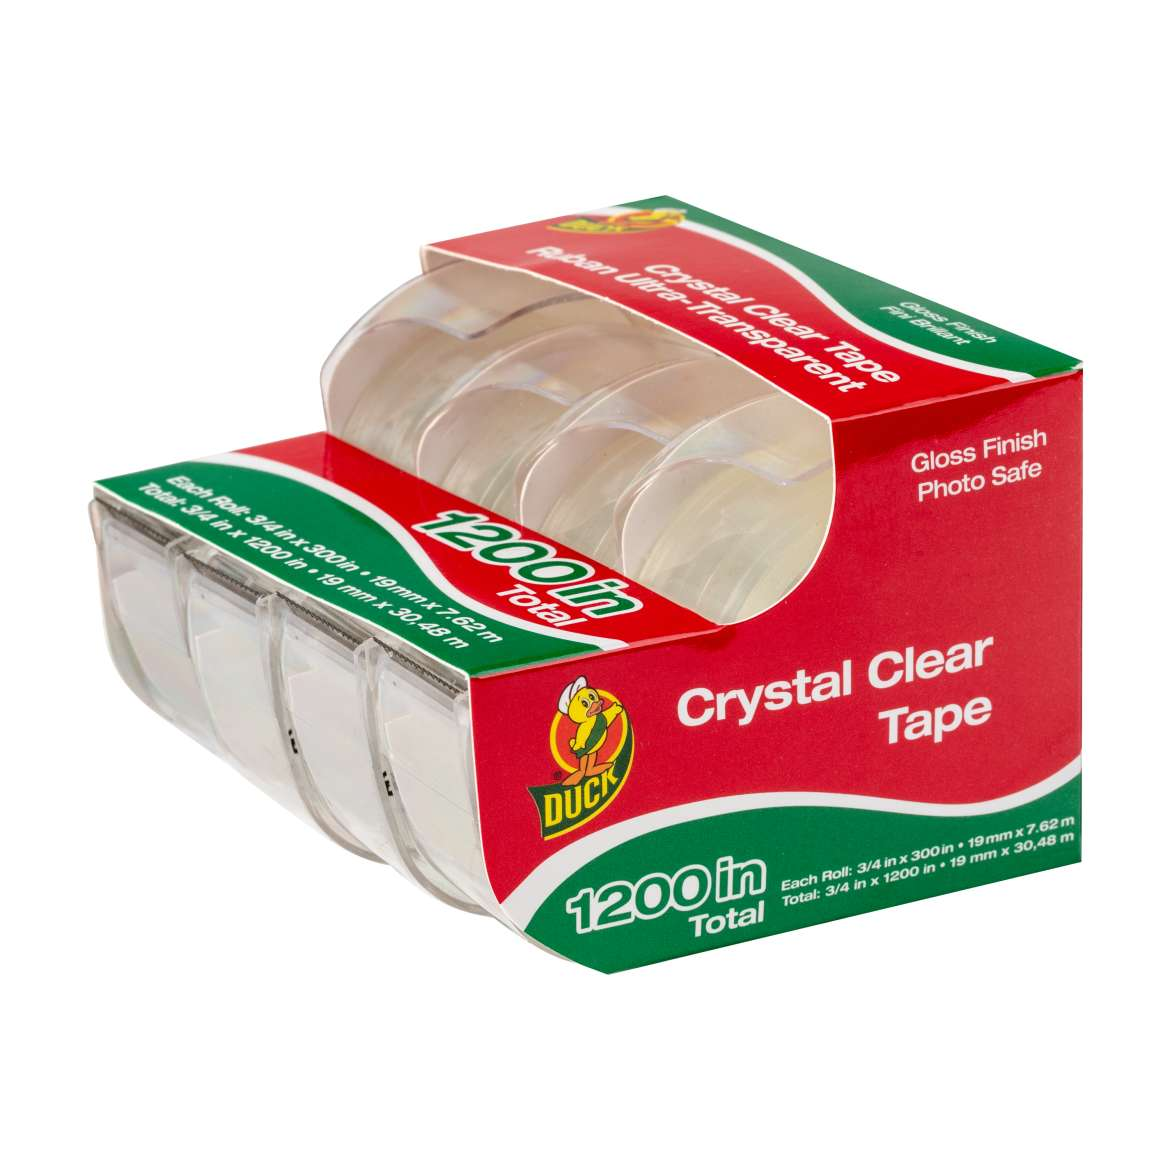 Duck® Brand Crystal Clear Invisible Tape - Crystal Clear, 4 pk, .75 in. x 300 in. Image